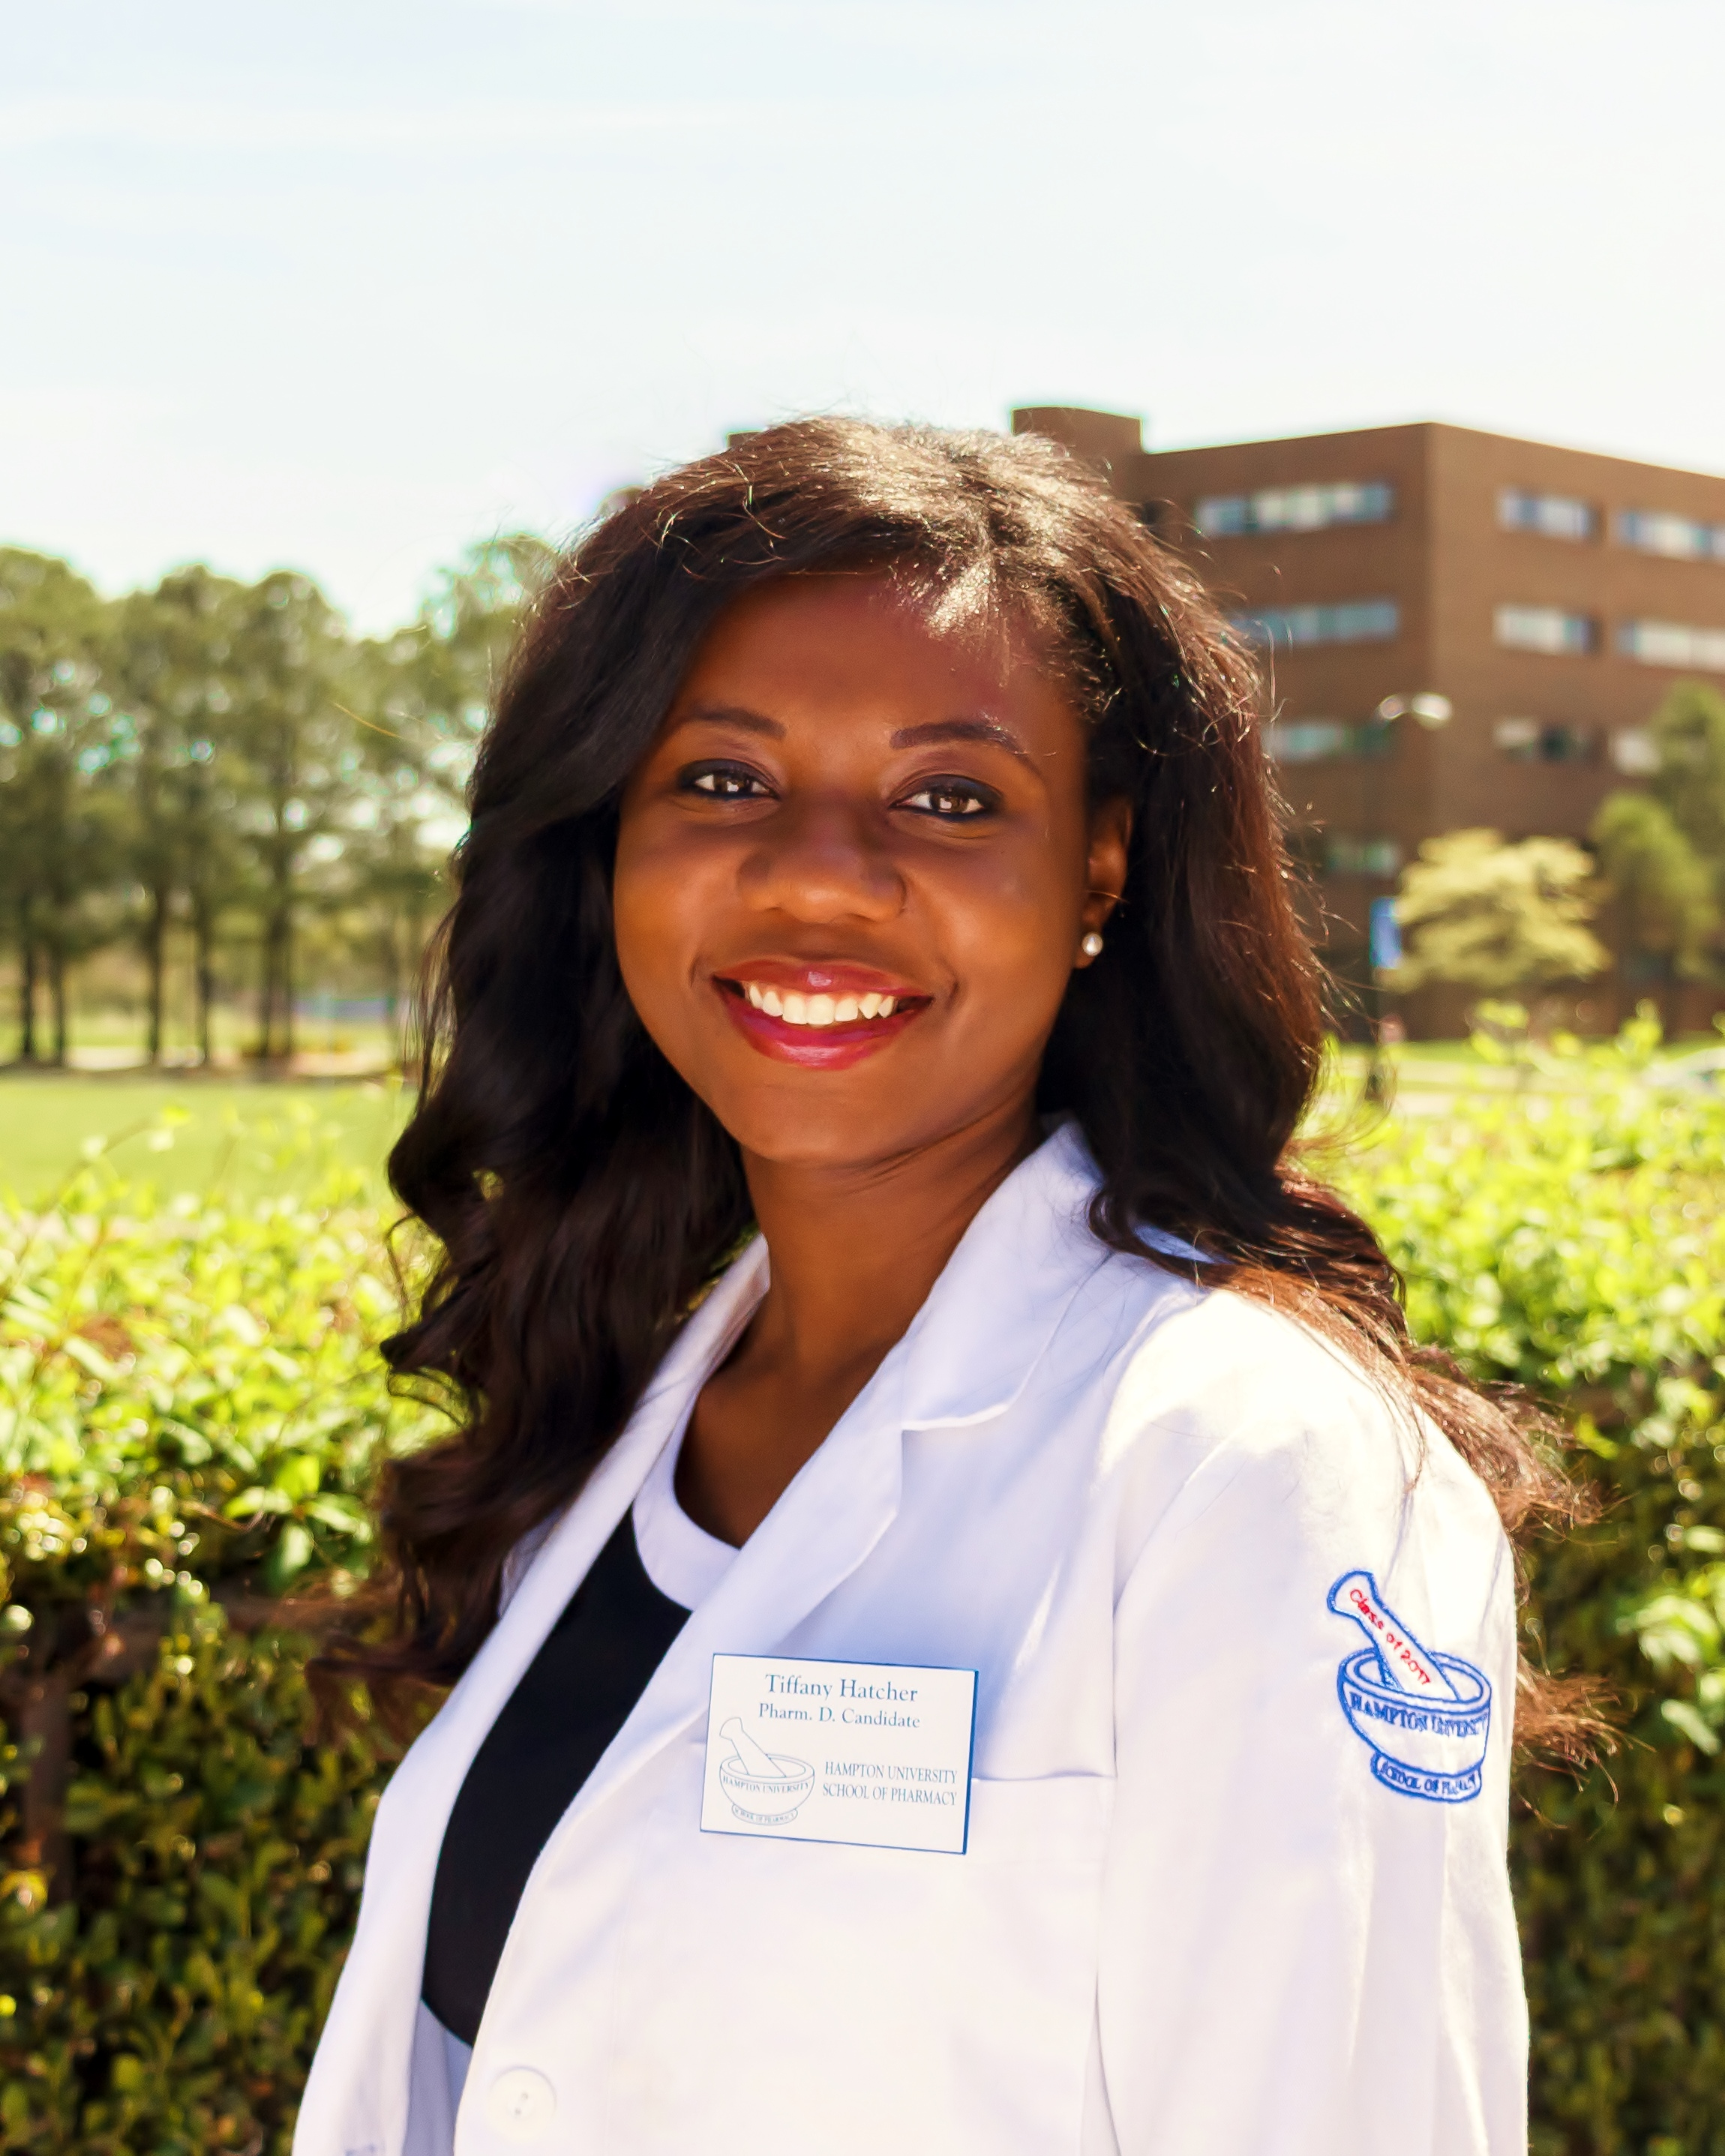 Tiffany Hatcher, PharmD